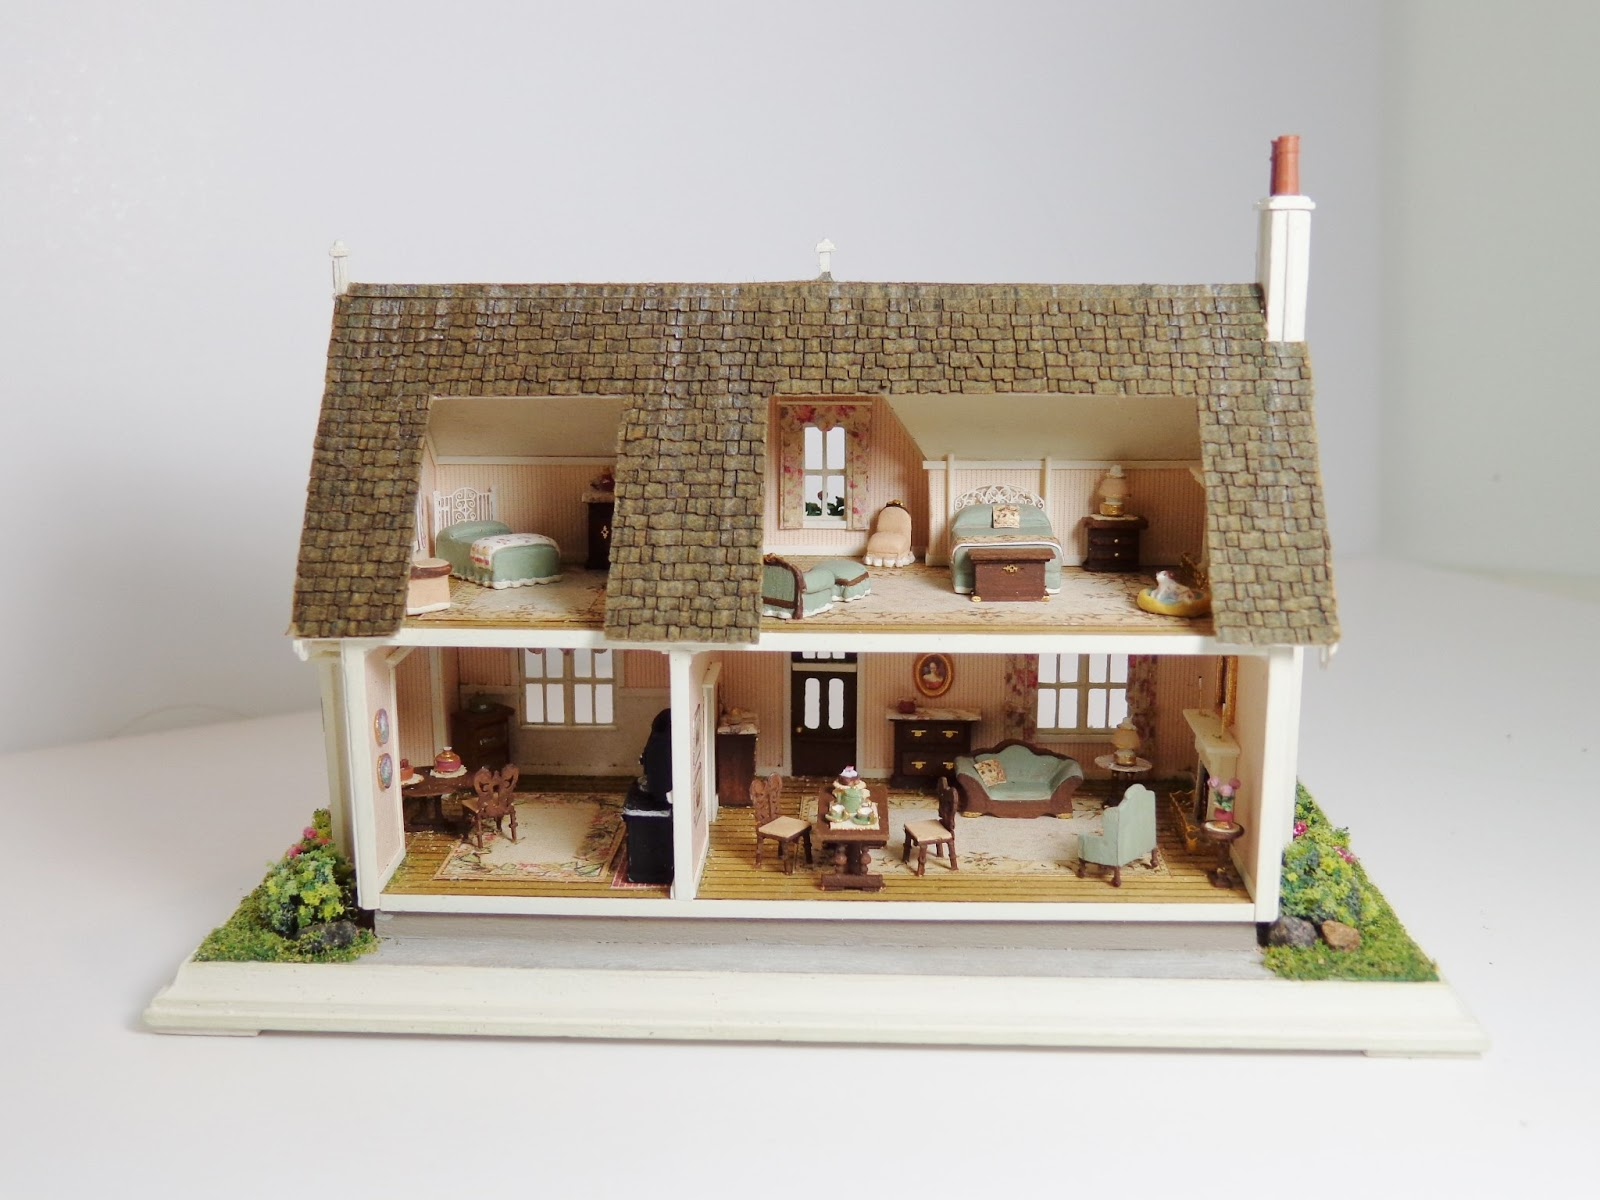 pin pottery studio cottage shaped mudlen cottages vintage end house houses miniature